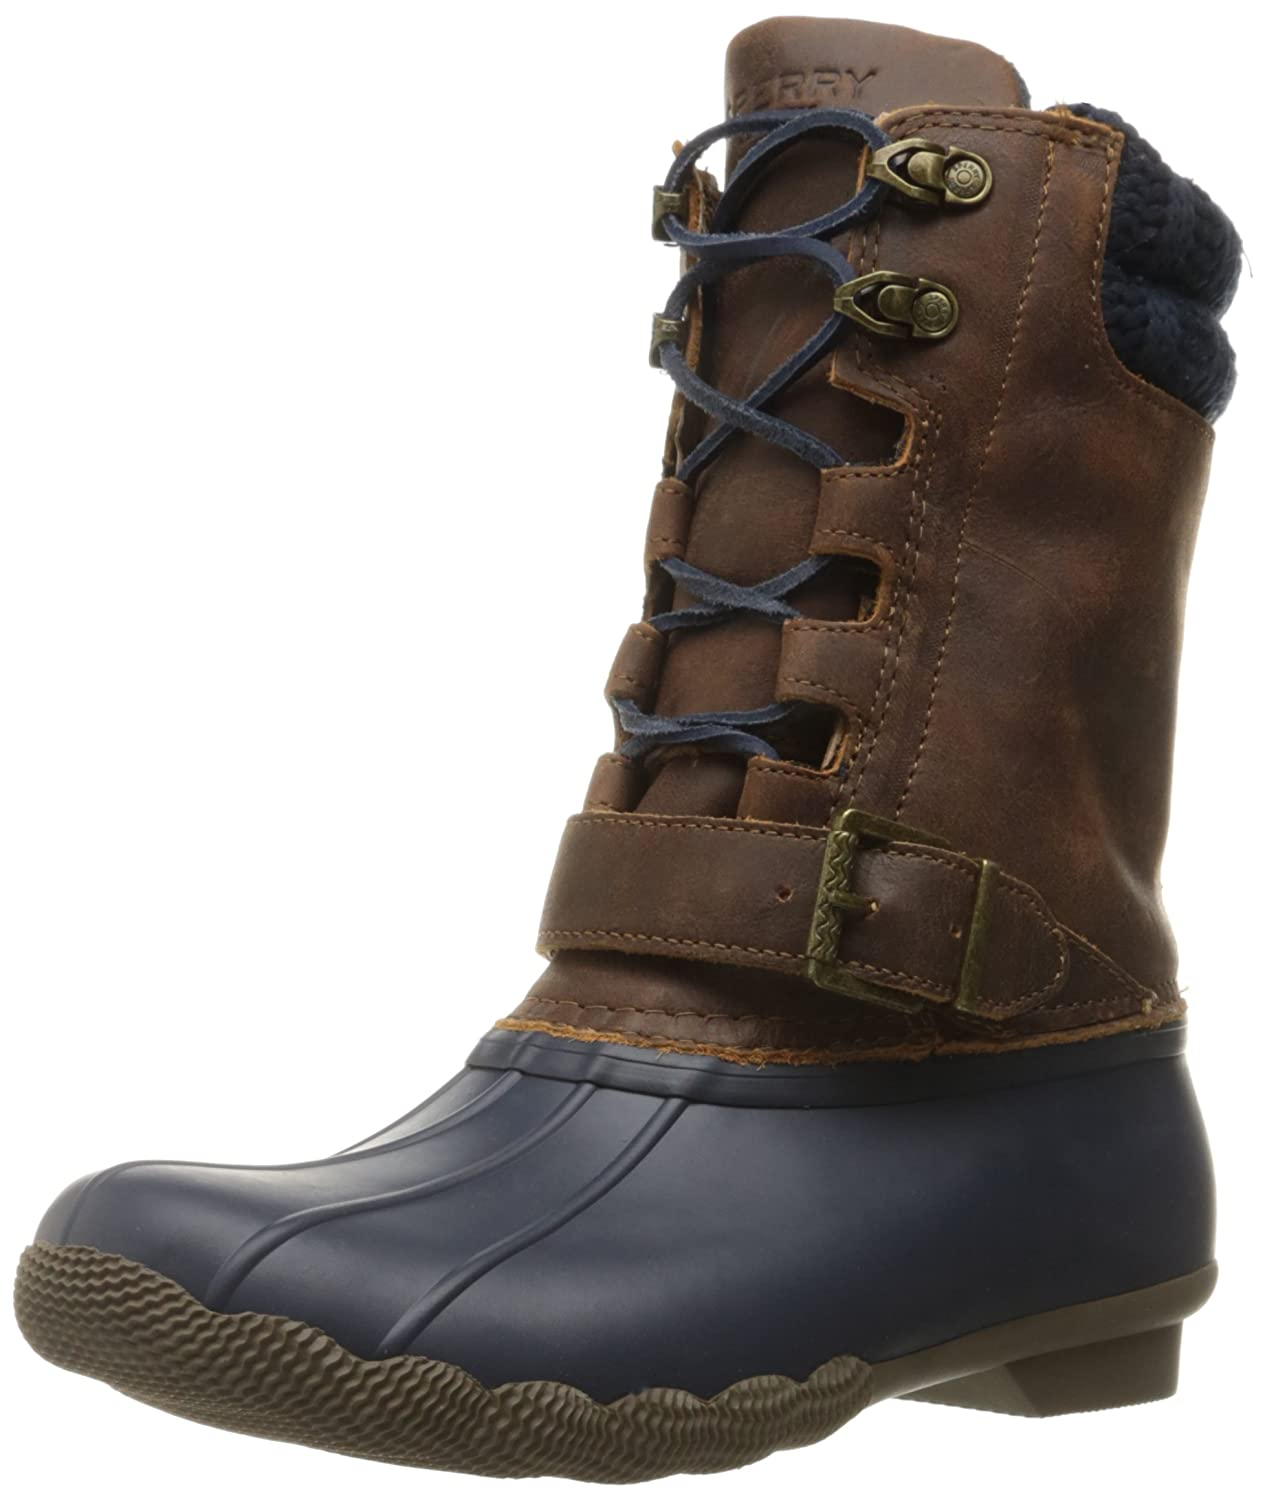 Sperry Top-Sider Women's Saltwater Misty Rain Boot B019X7F6Z4 6.5 B(M) US|Navy/Brown